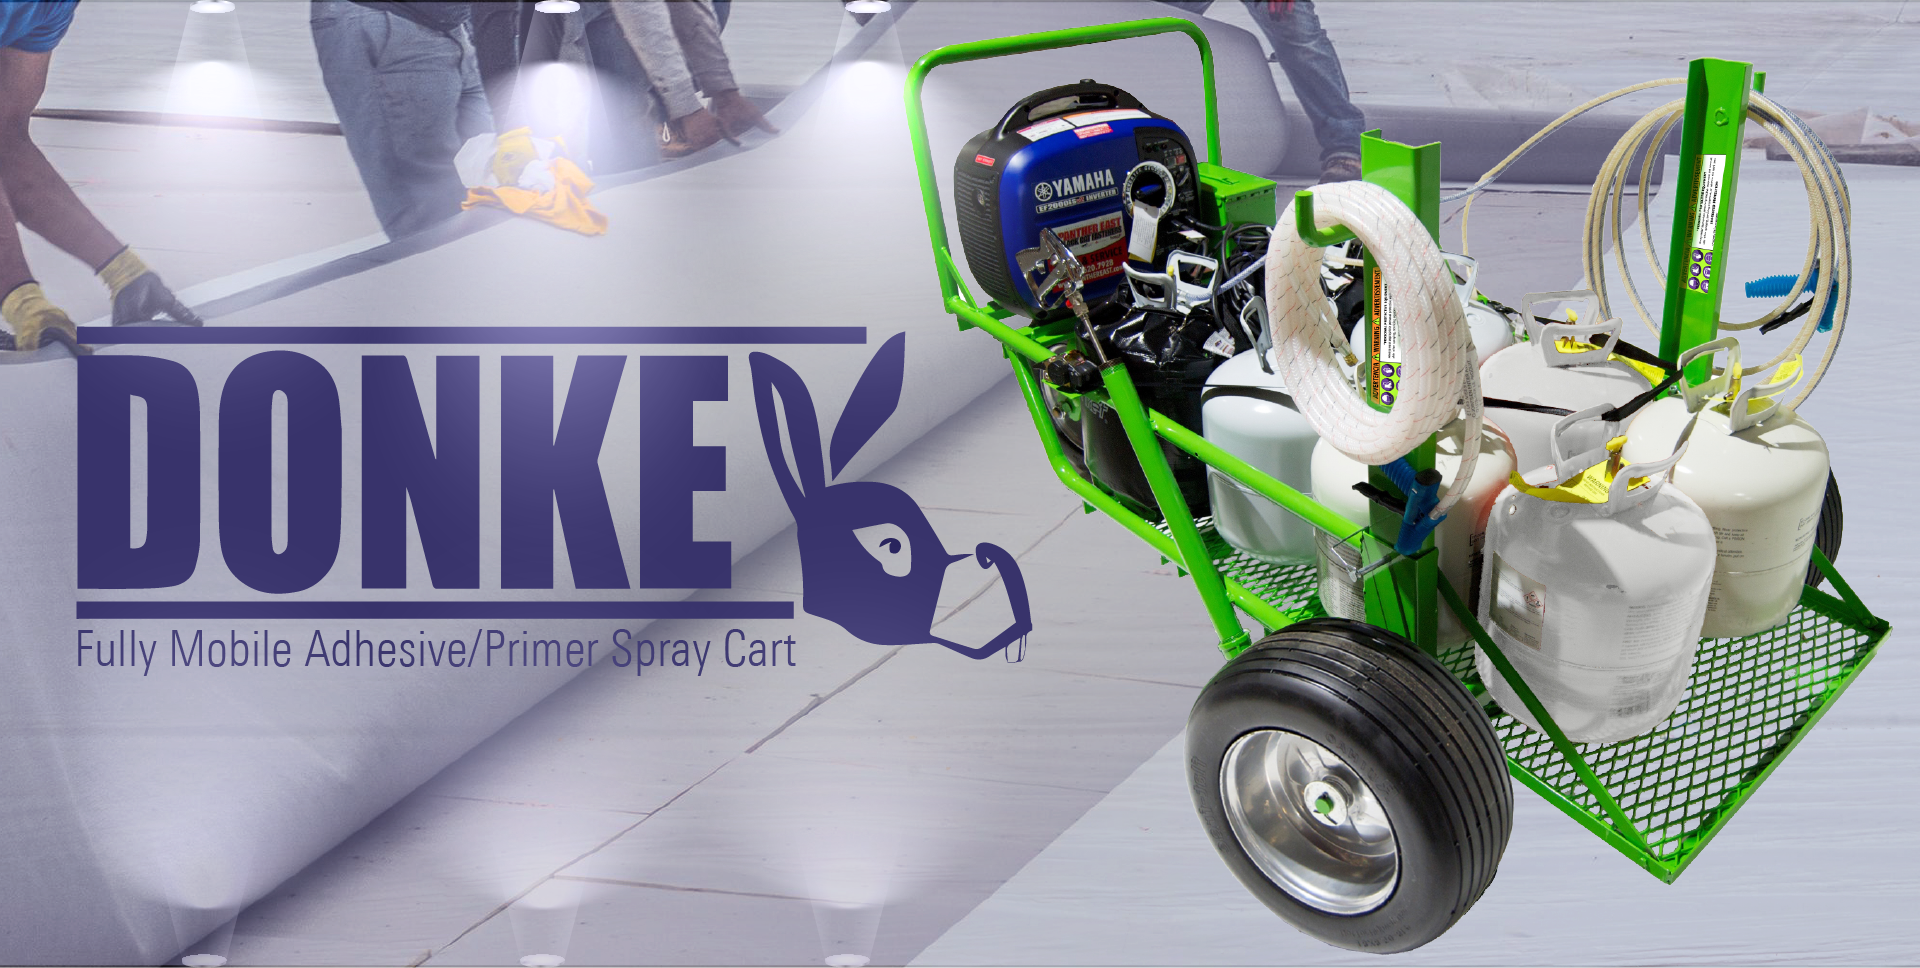 The Donkey - Mobile Adhesive and Primer Spray Foam Roofing Cart